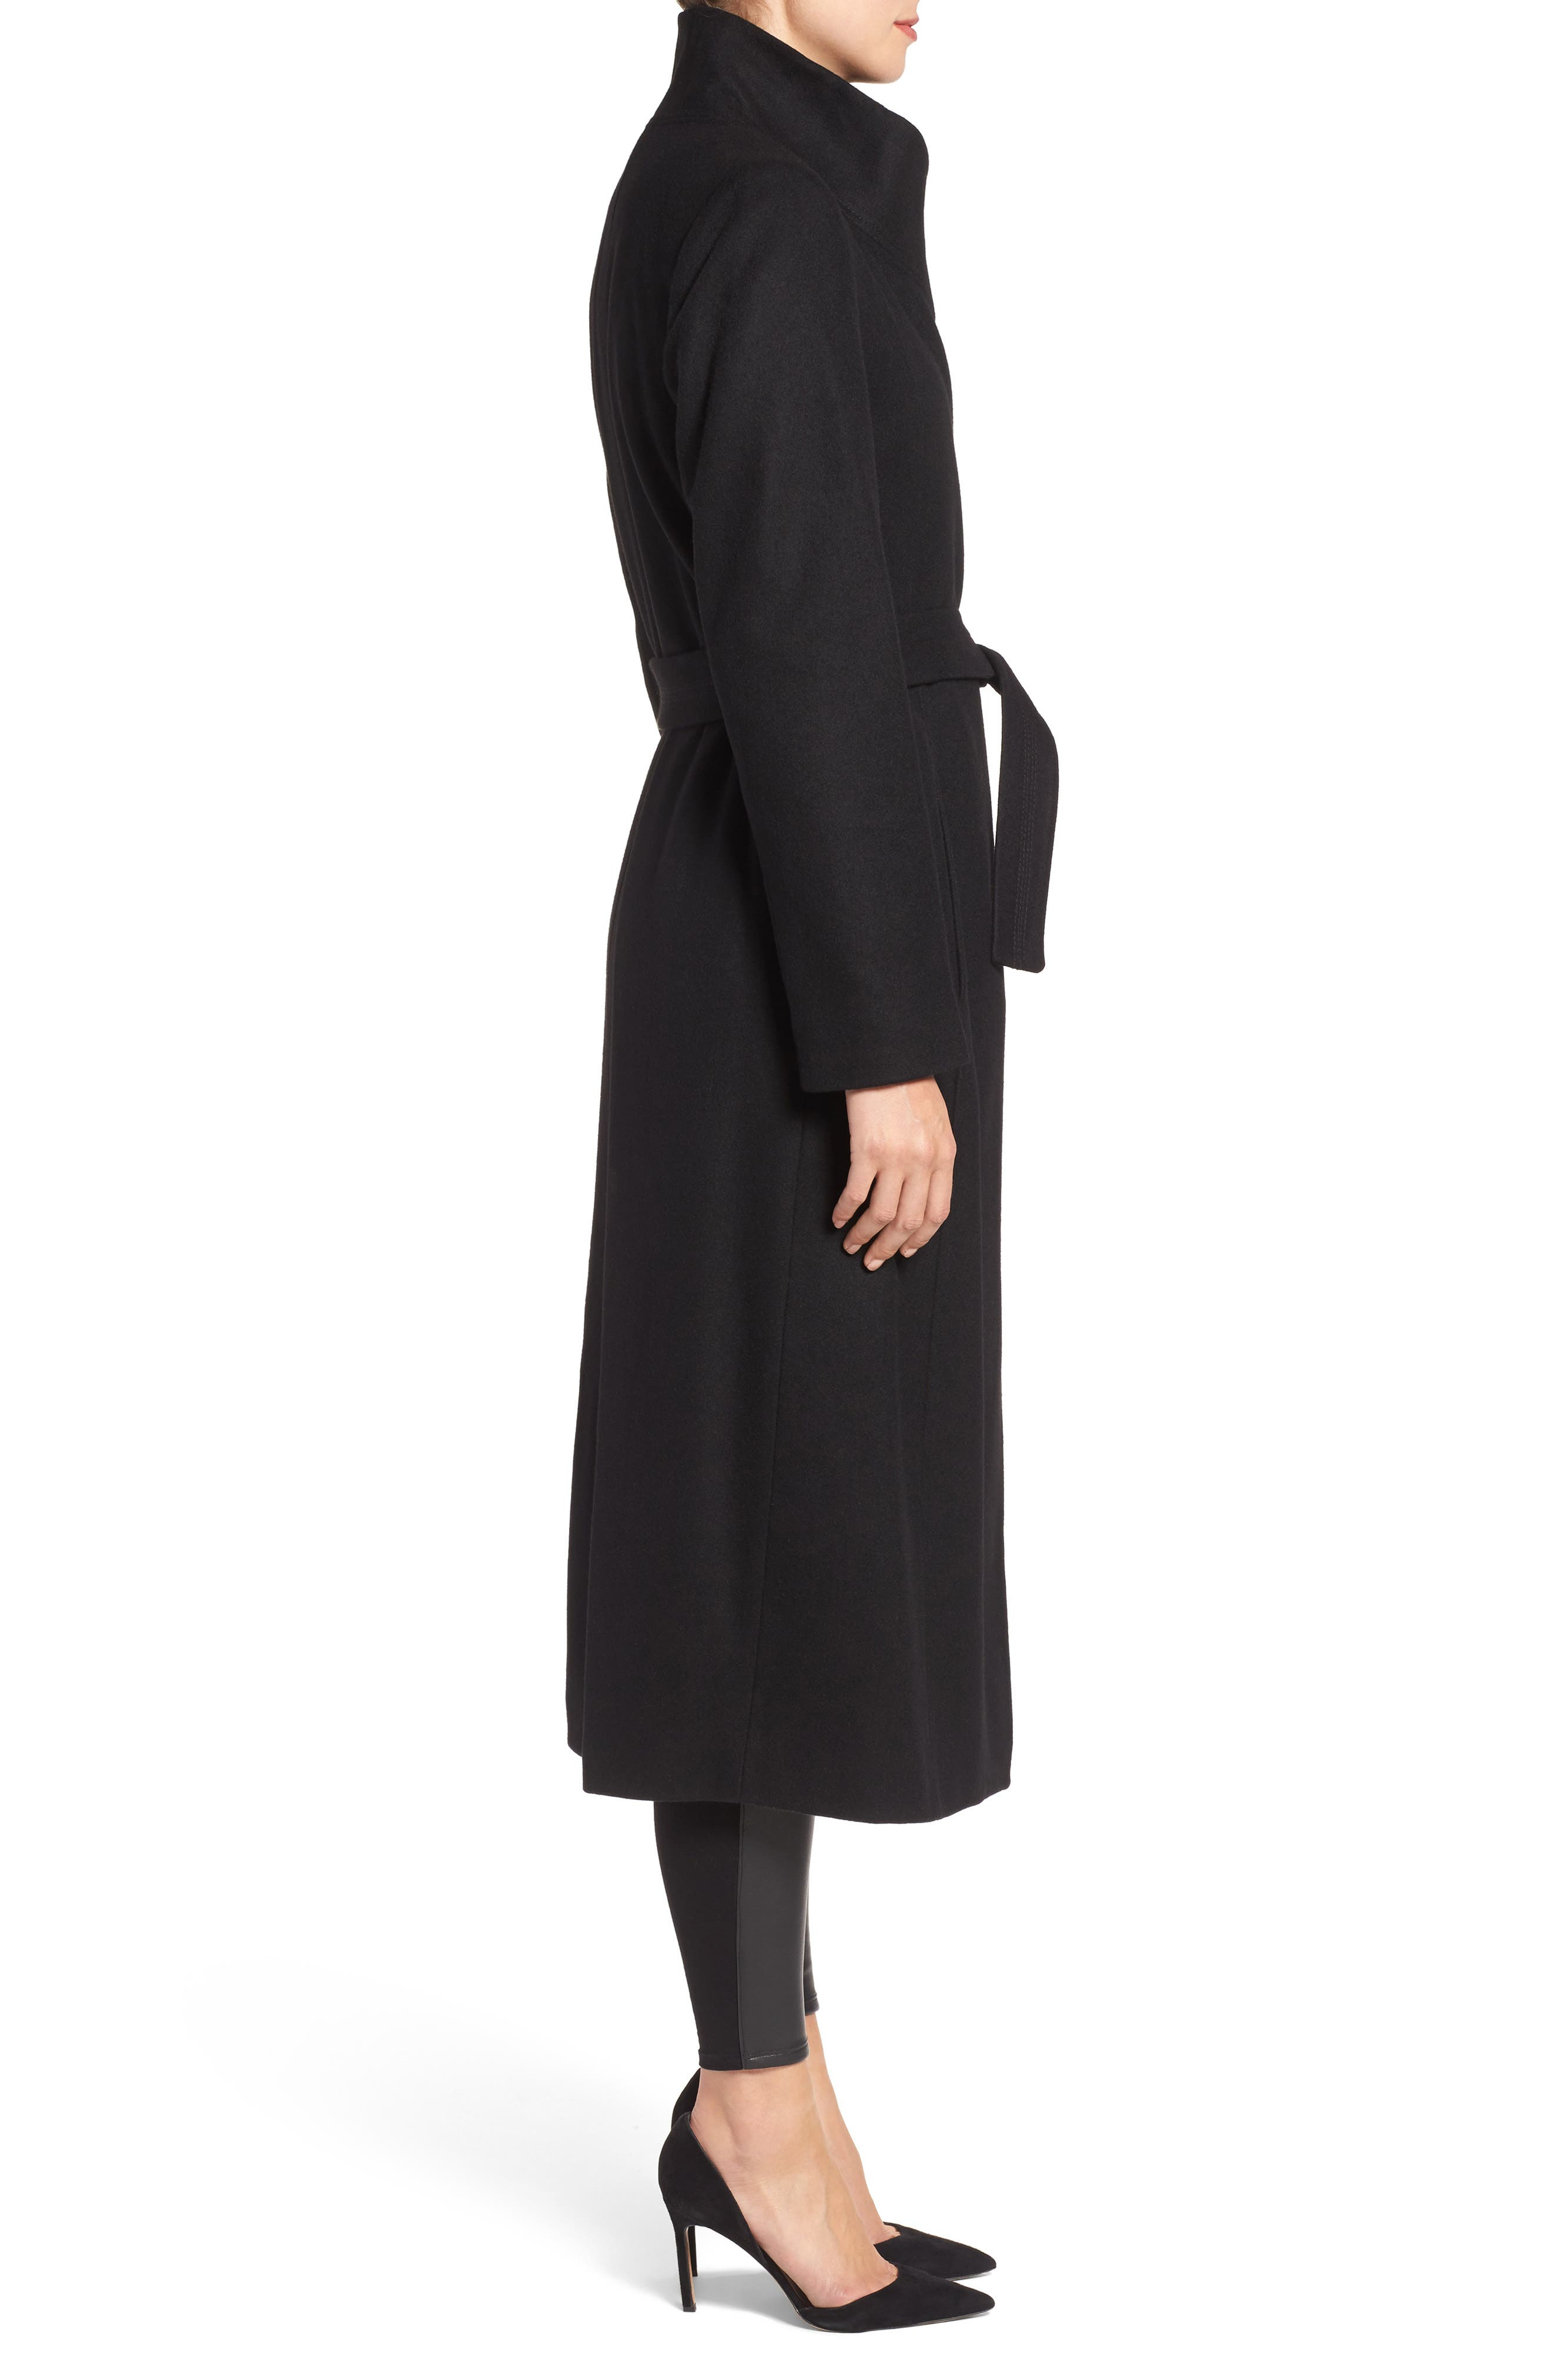 KENNETH COLE NEW YORK, Fencer Melton Wool Maxi Coat, Alternate thumbnail 4, color, 001